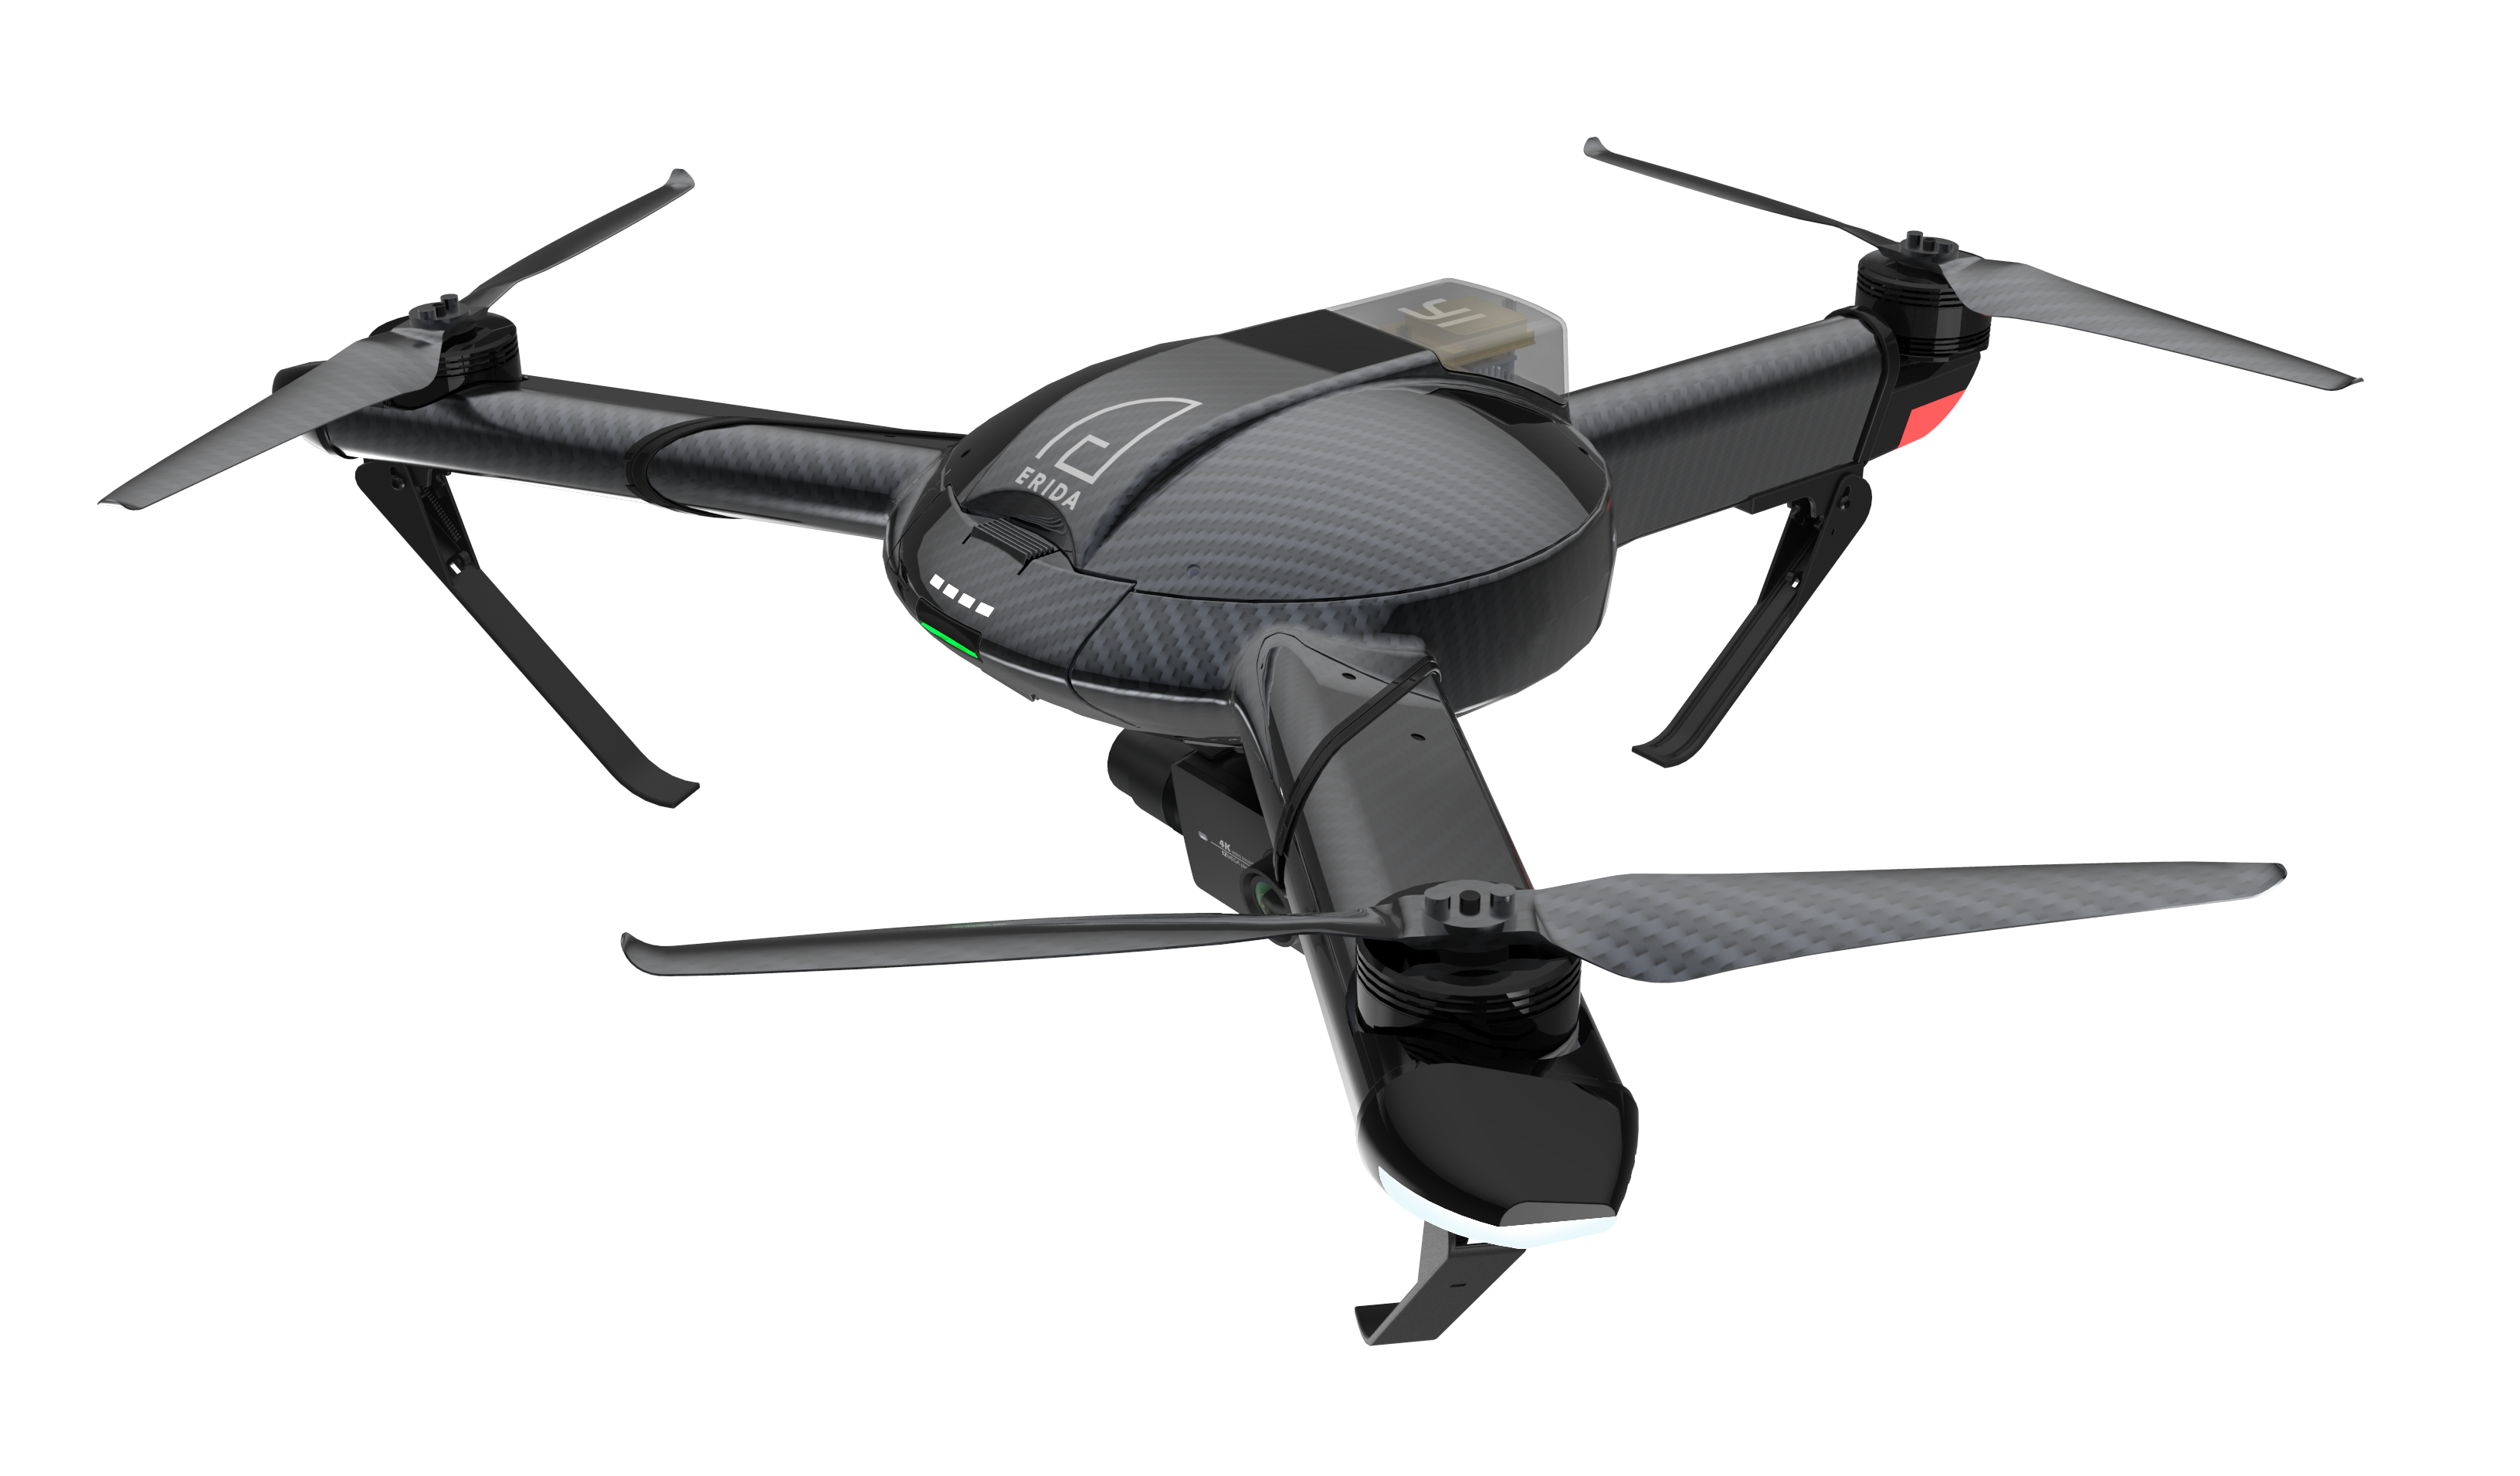 Drone AirCraf High quality Png #47003.